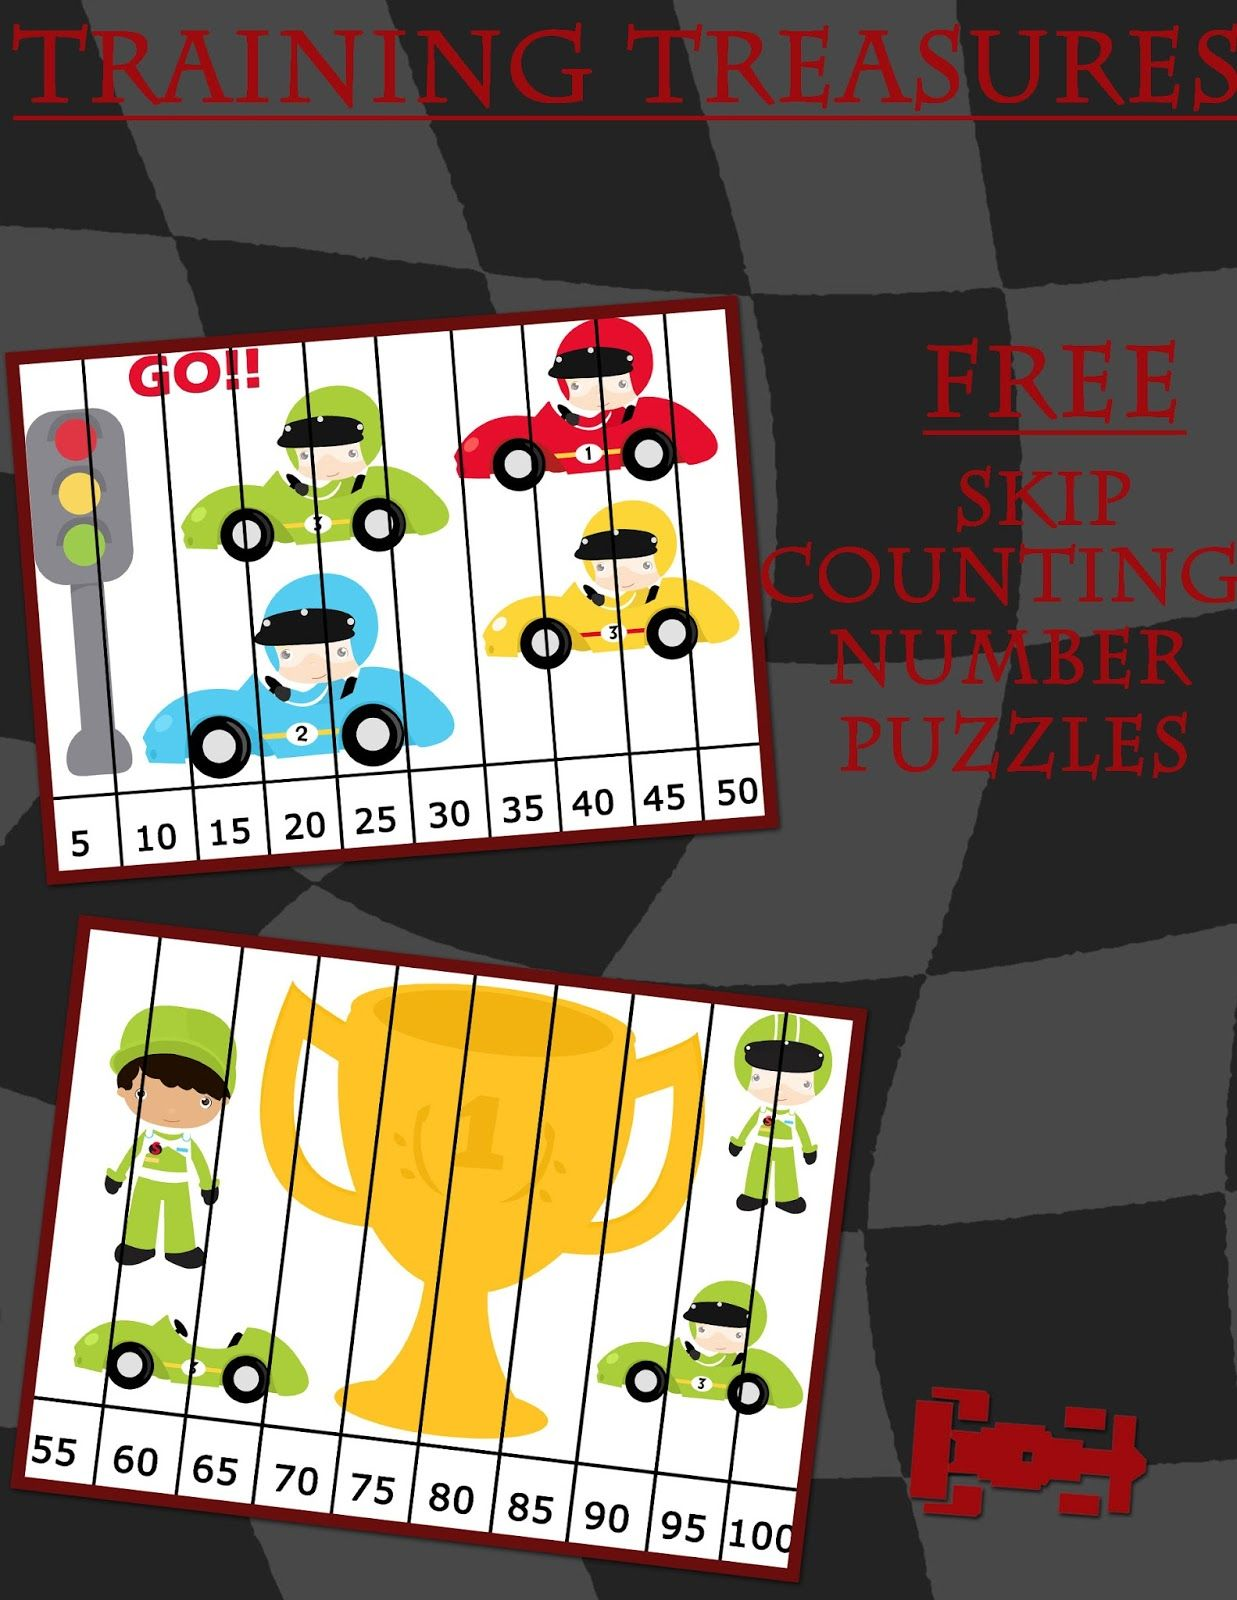 Training Treasures: FREE Race Car Counting By 5u0027s Number Puzzles!